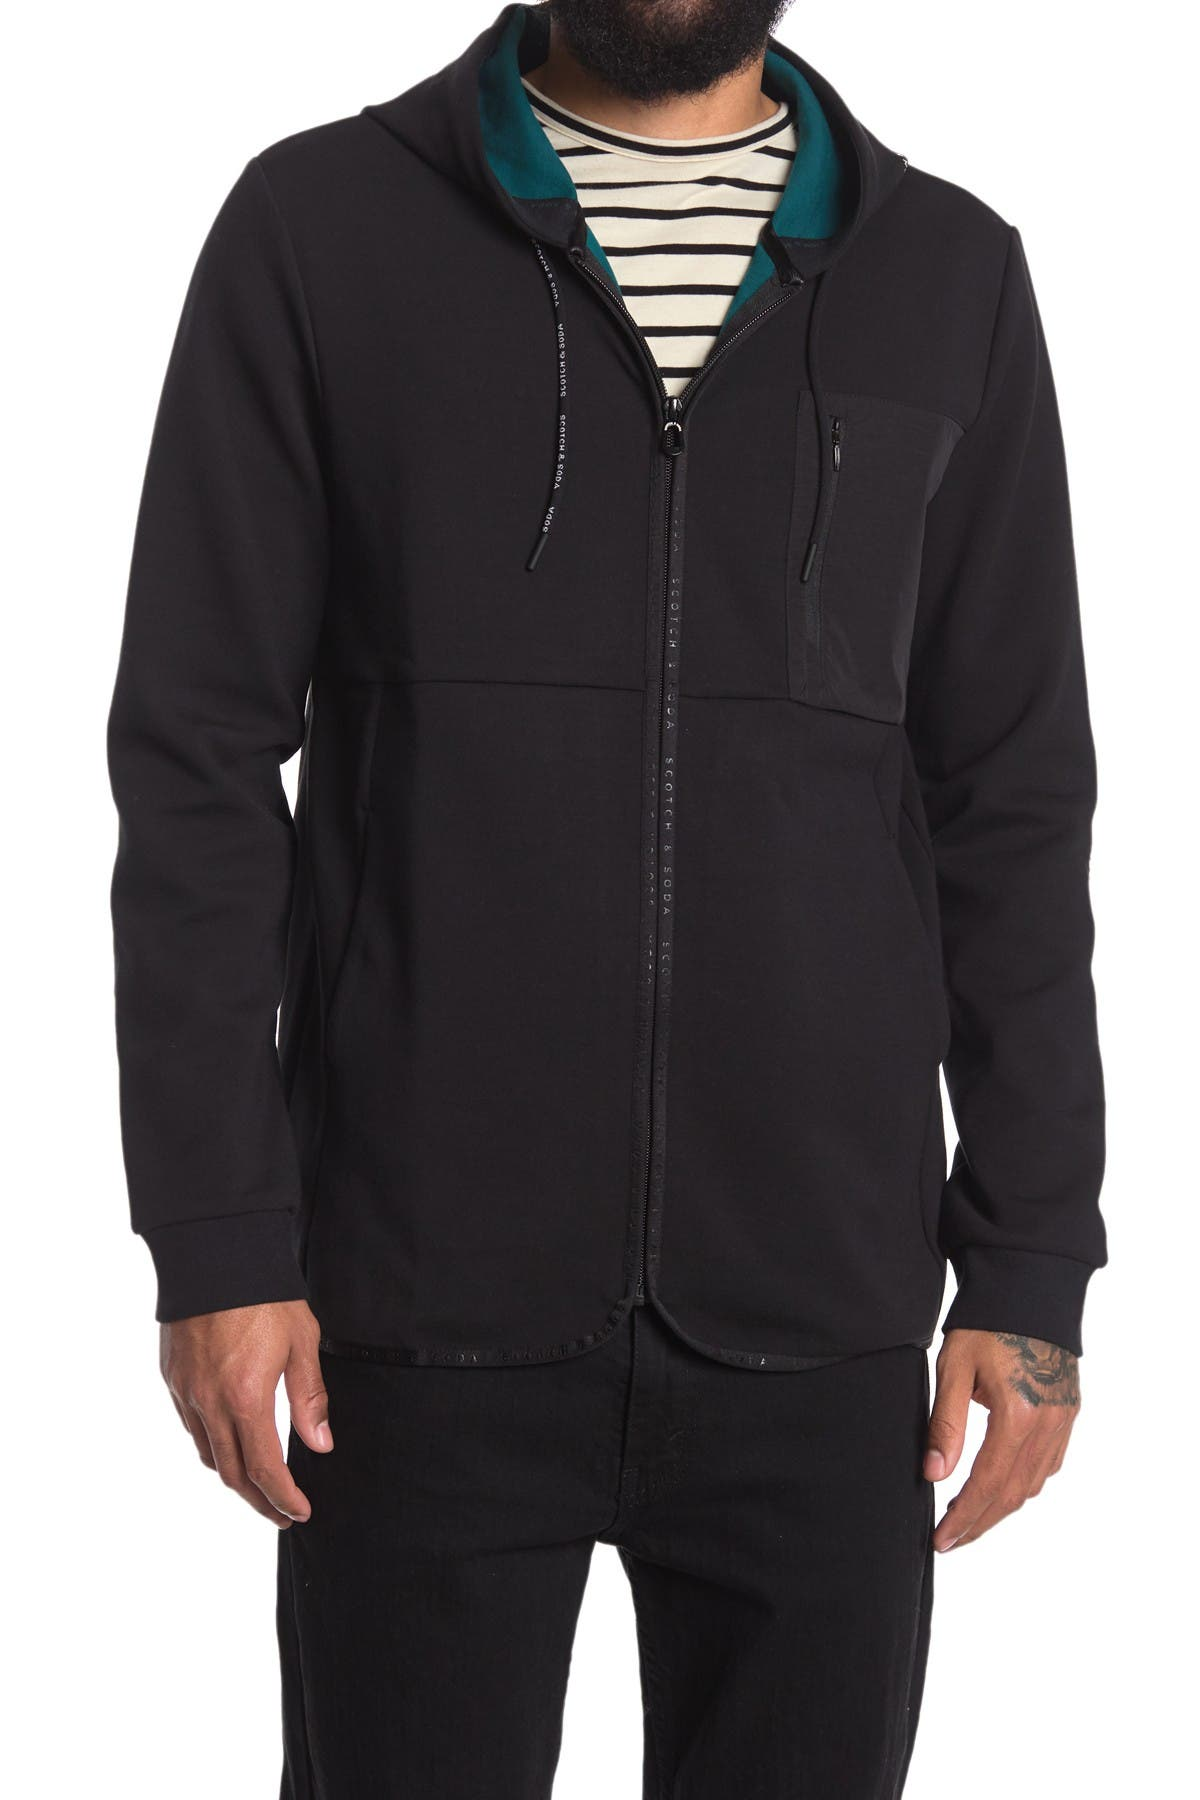 Image of Scotch & Soda Club Nomade Hooded Jacket